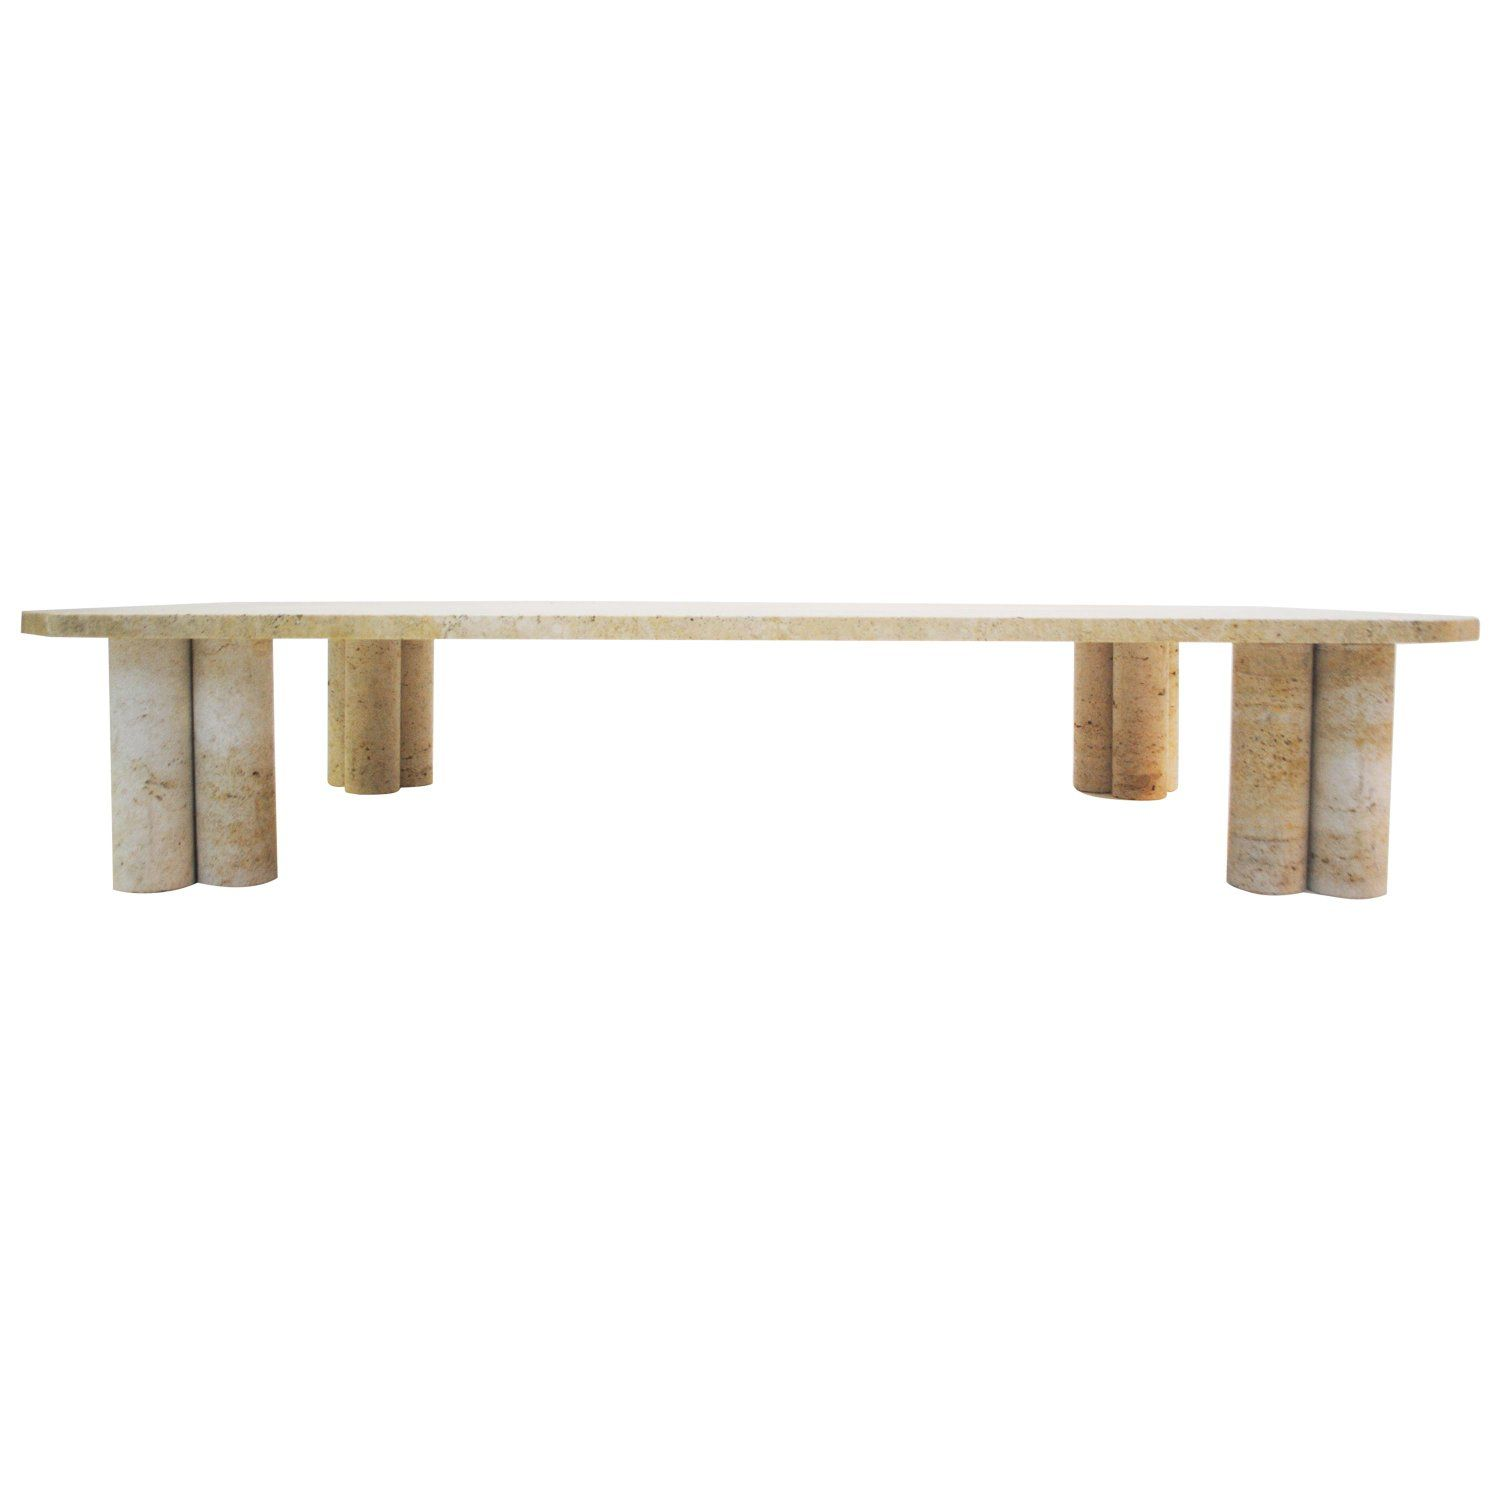 Coffee Table In Travertine In The Style Of Mario Bellini Italy Circa 1970s Travertine Coffee Table Travertine Italian Floor Lamp